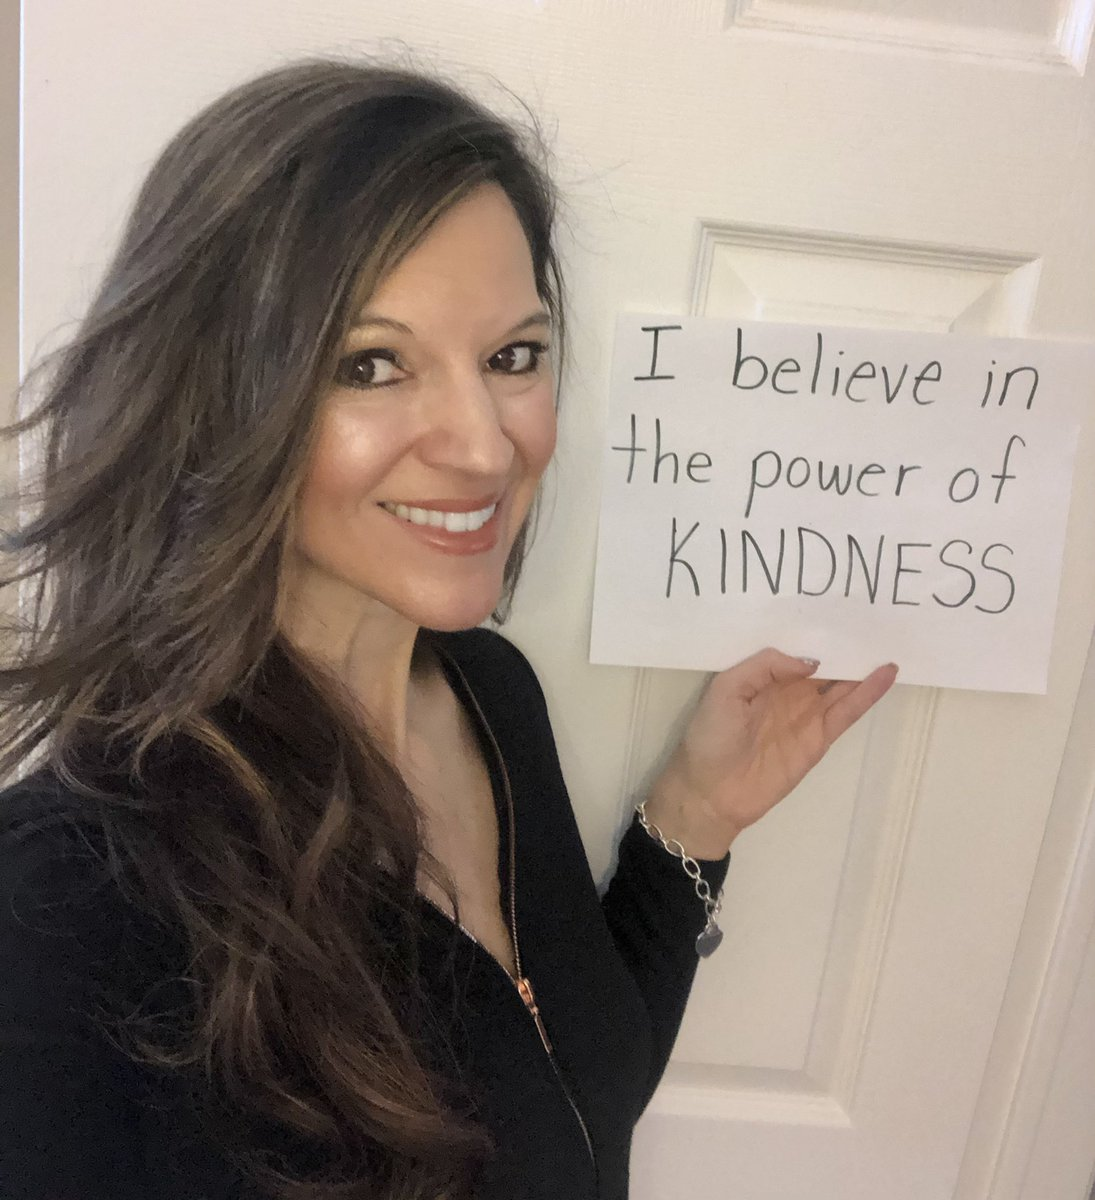 Finish this sentence with 1 word! I believe in the power of __________! #StarfishClub #mentalhealth